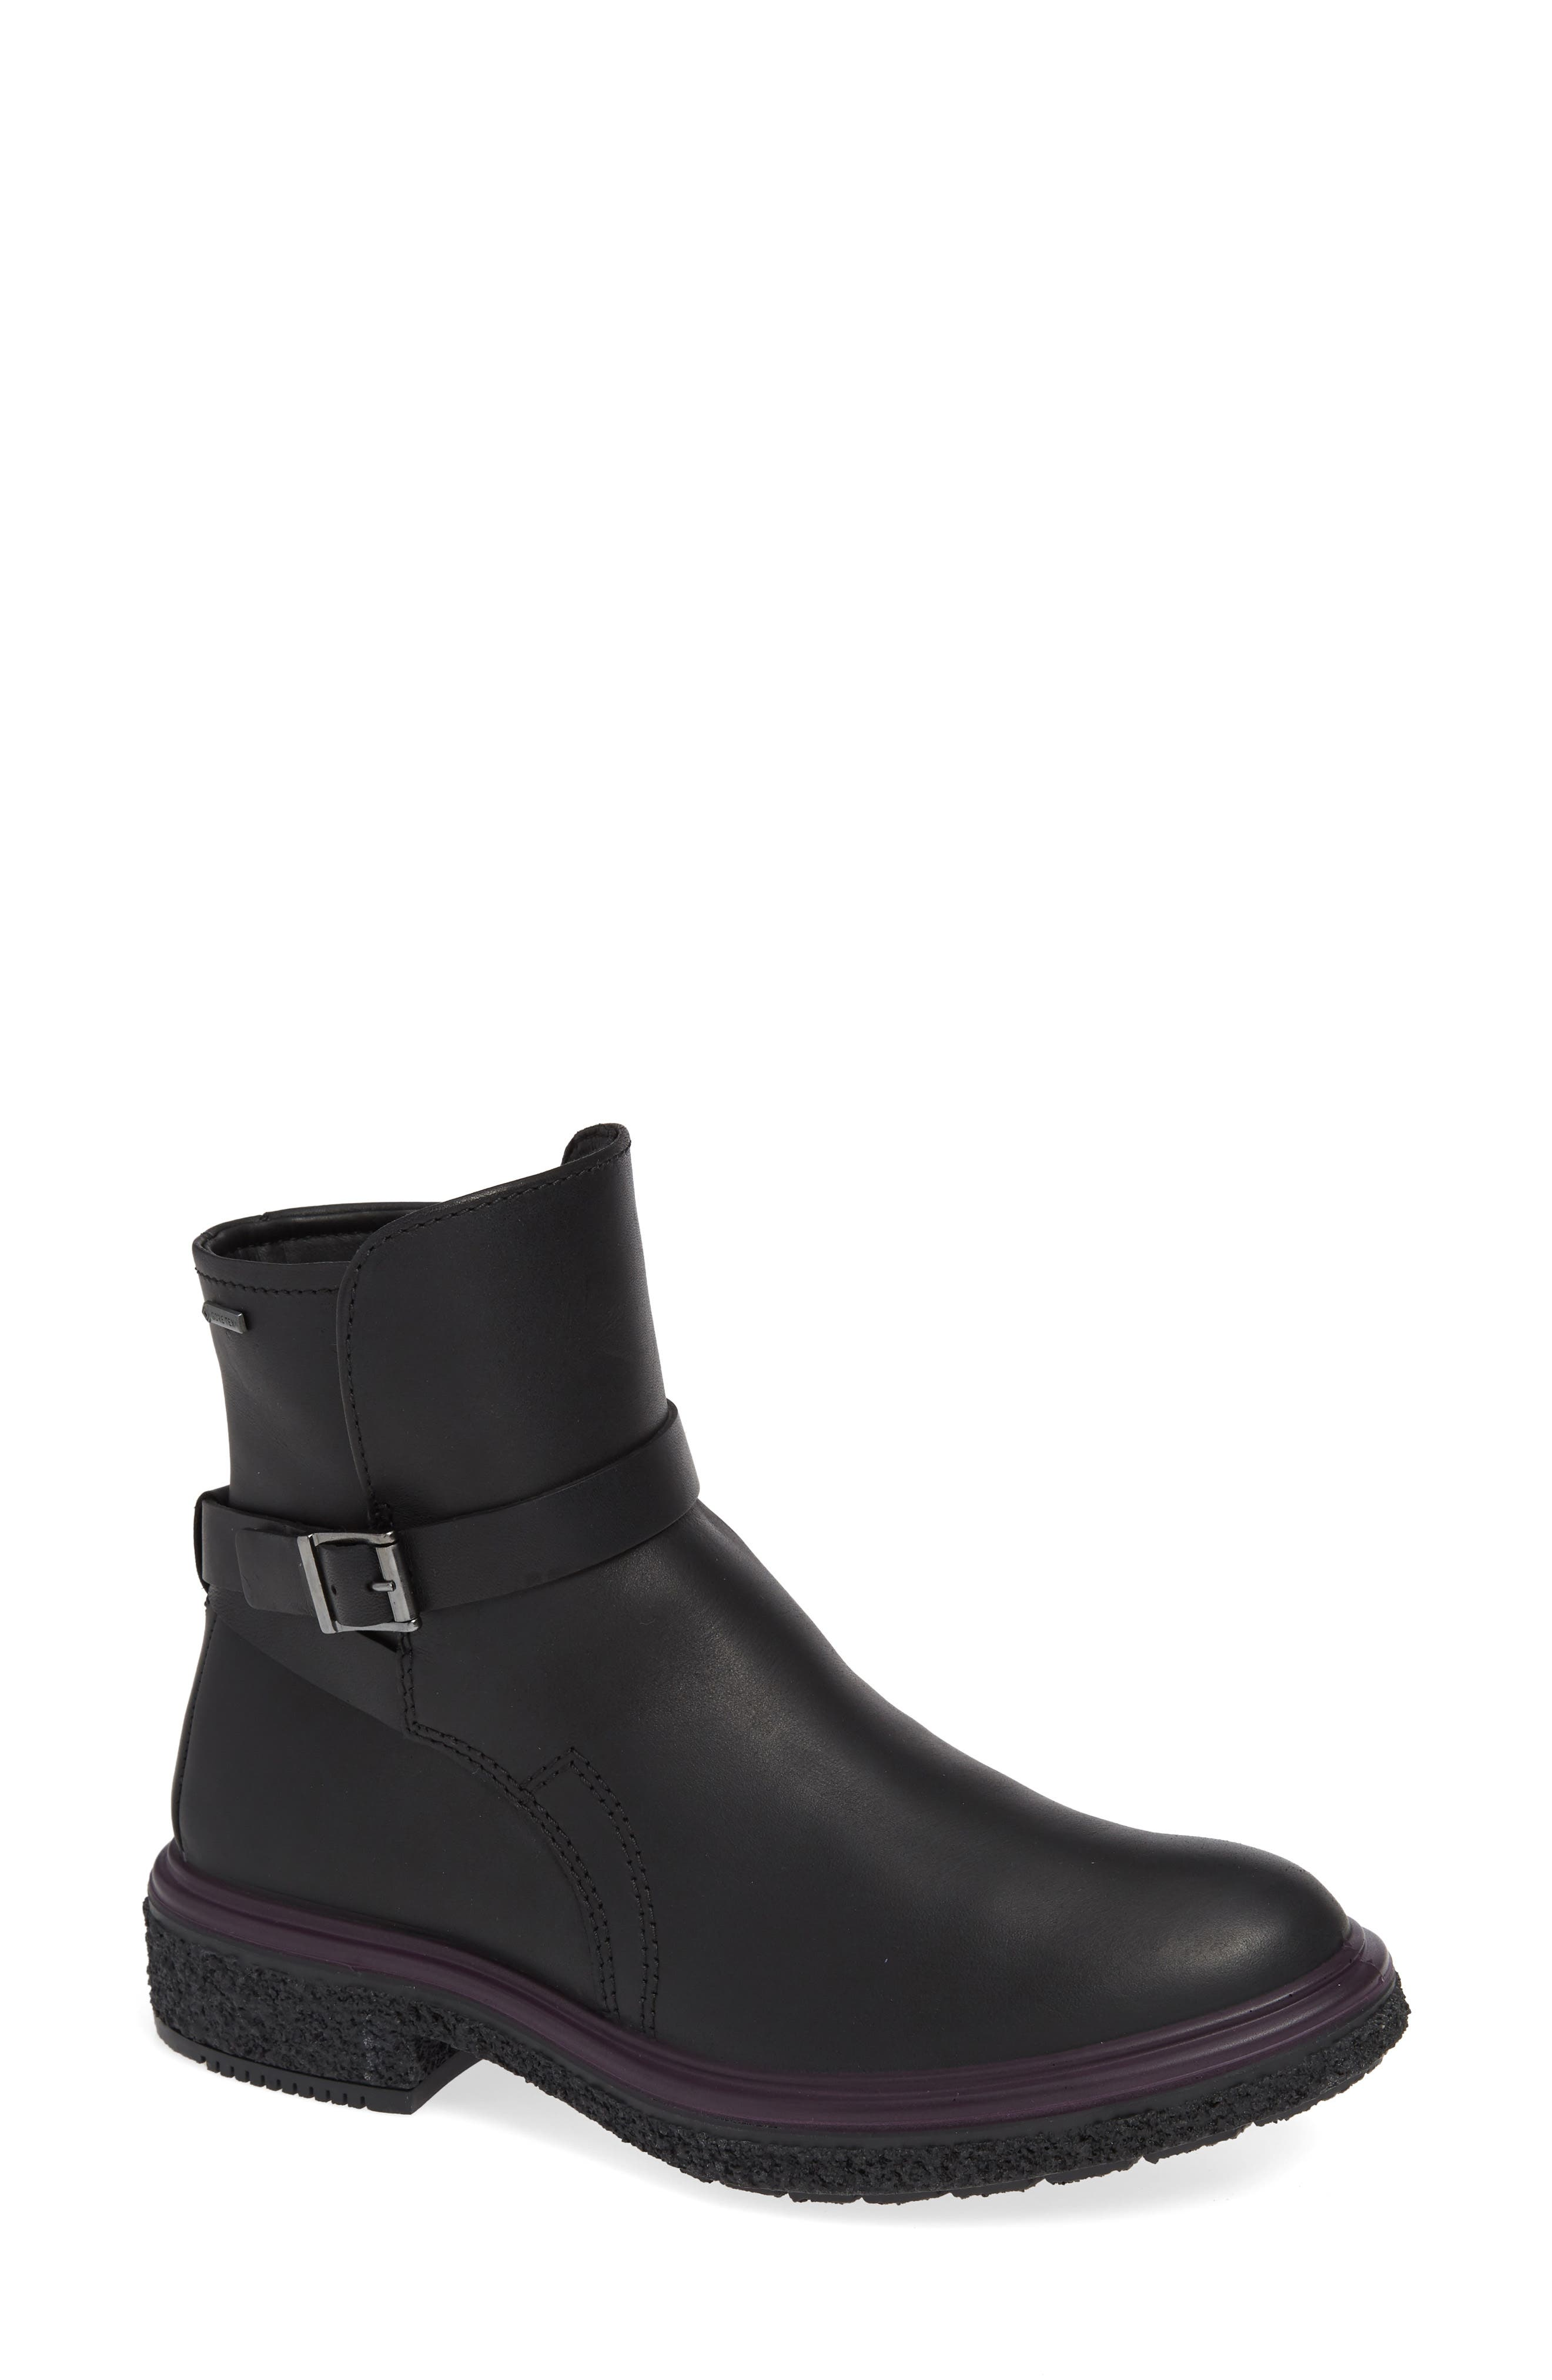 Crepetray GTX Waterproof Bootie,                             Main thumbnail 1, color,                             BLACK LEATHER